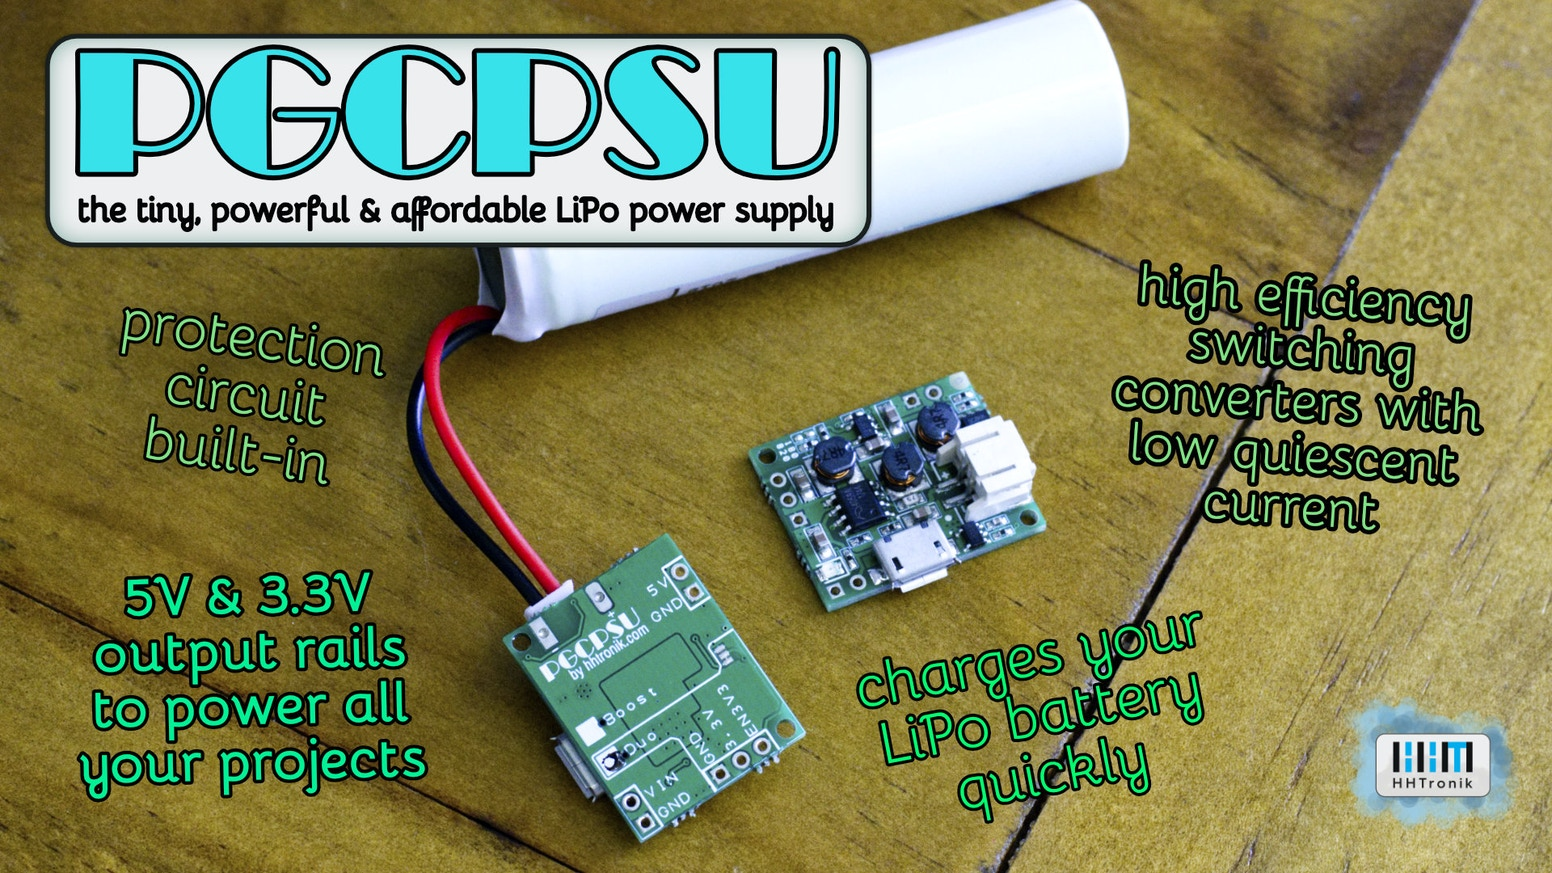 Pretty Good Cheap Power Supply Unit - PGCPSU. Get the best tiny power supply for your battery powered projects!